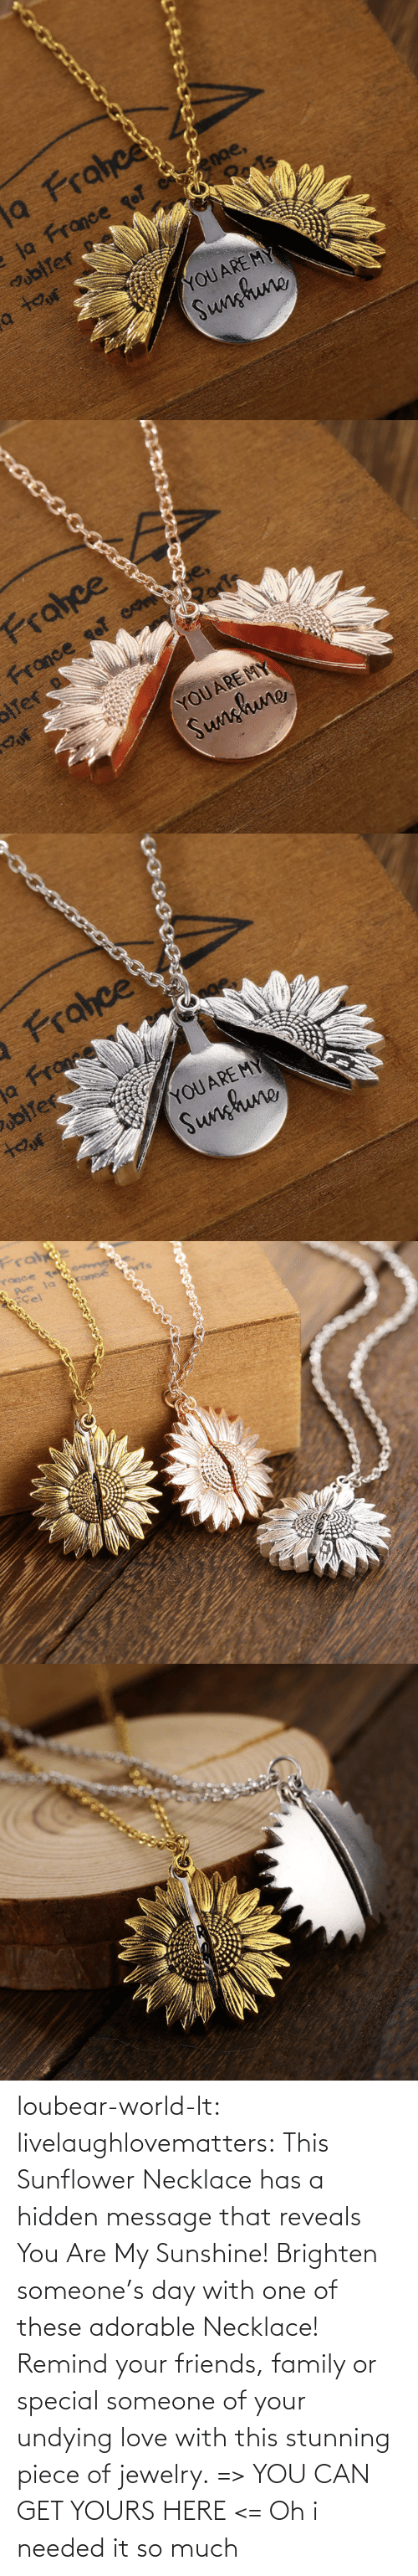 yours: loubear-world-lt: livelaughlovematters:   This Sunflower Necklace has a hidden message that reveals You Are My Sunshine! Brighten someone's day with one of these adorable Necklace! Remind your friends, family or special someone of your undying love with this stunning piece of jewelry. => YOU CAN GET YOURS HERE <=    Oh i needed it so much